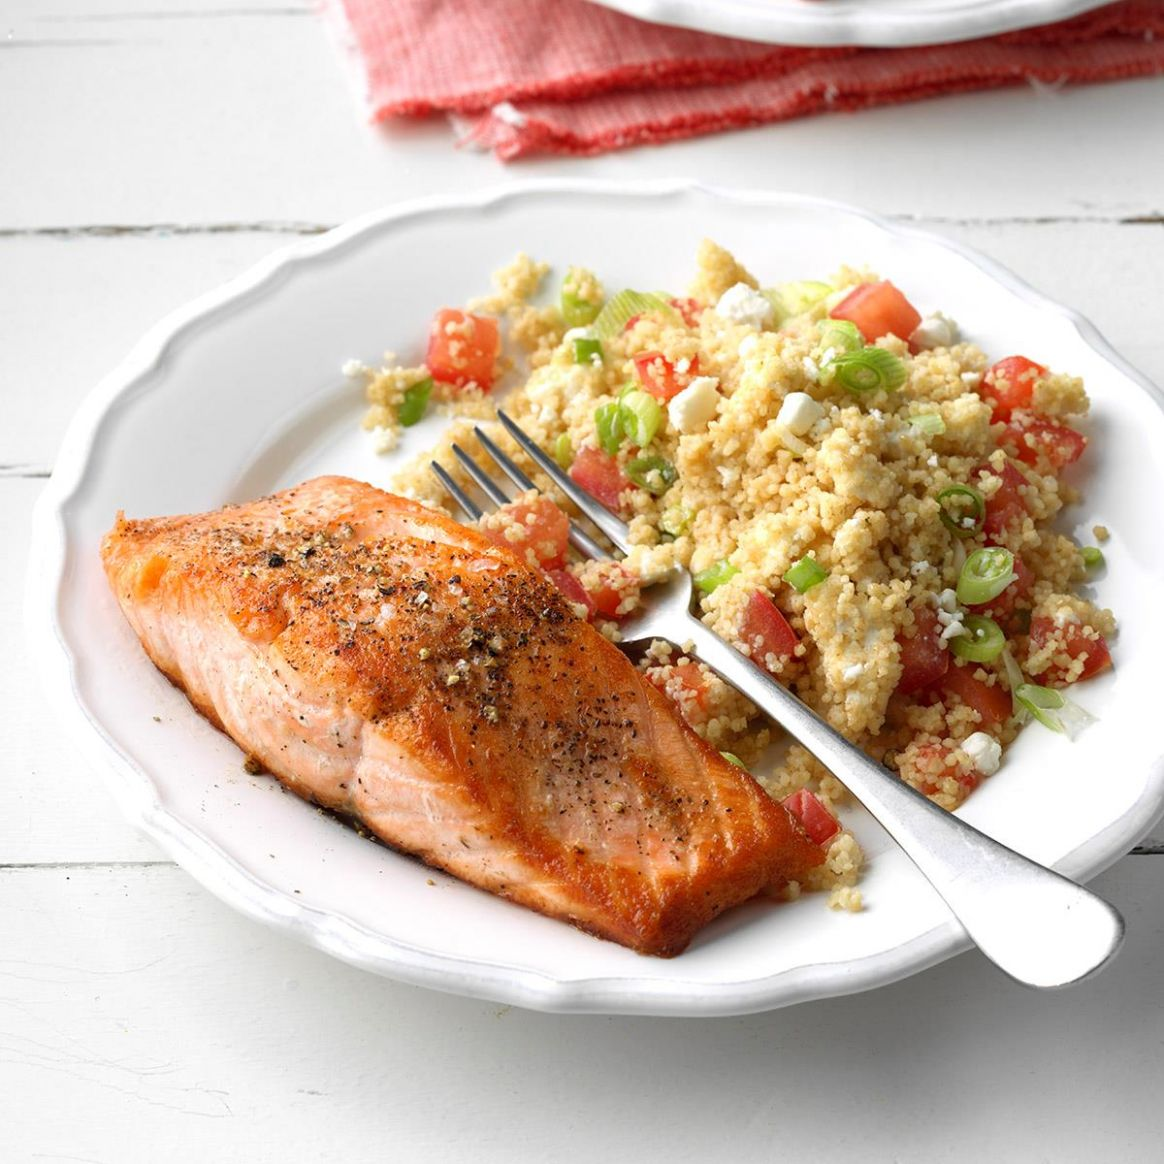 Salmon with Tomato-Goat Cheese Couscous - Dinner Recipes Fish